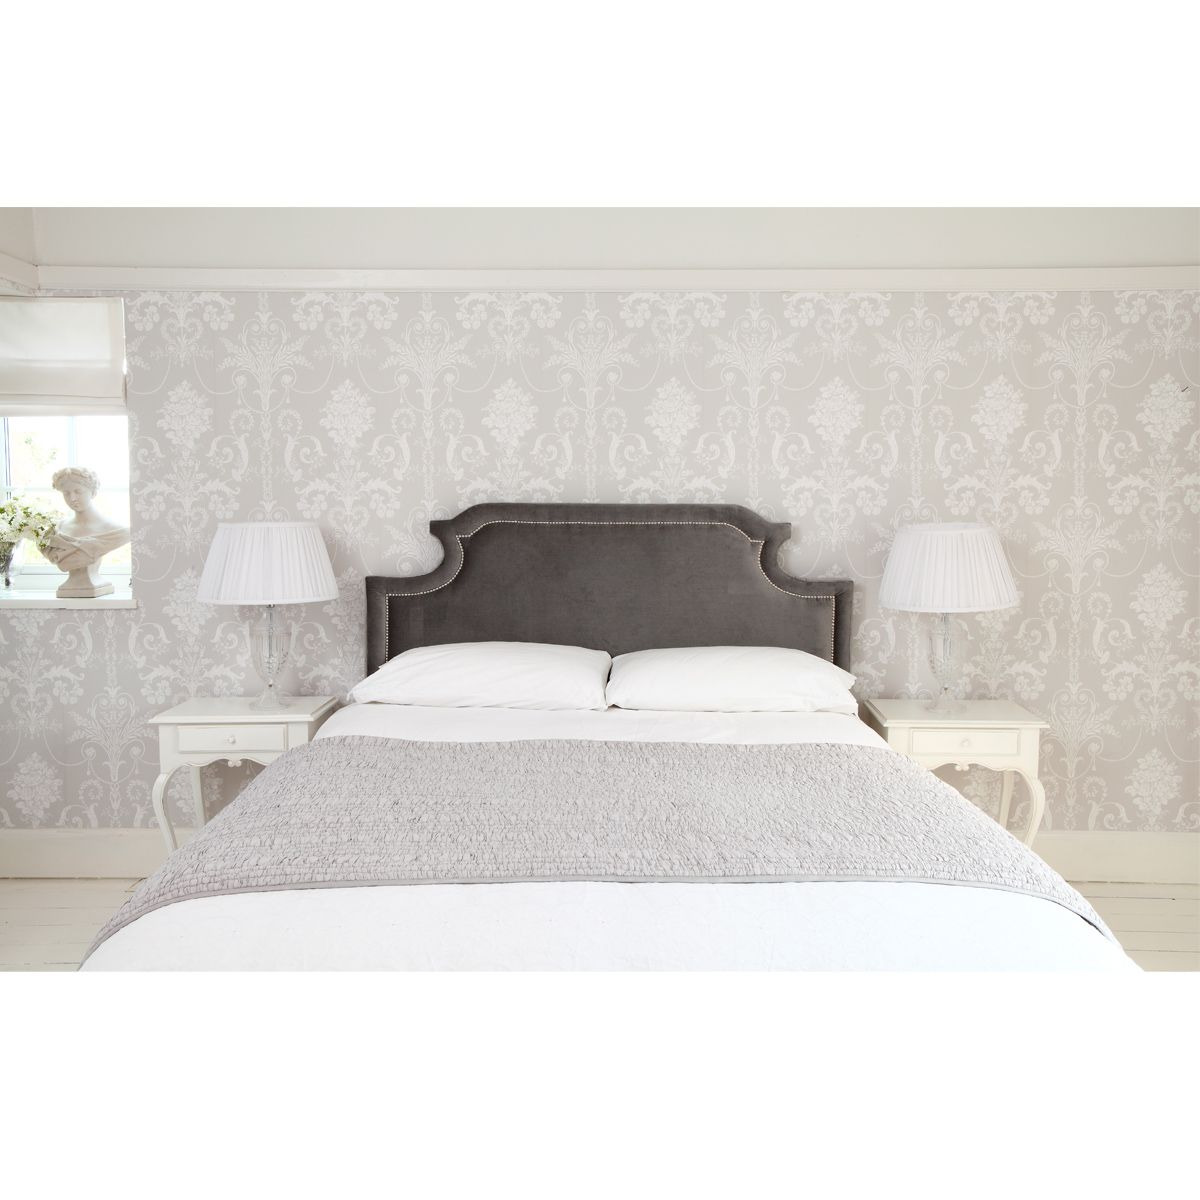 Best Layla Headboard In Sumptuous Grey For That Sophisticated 400 x 300